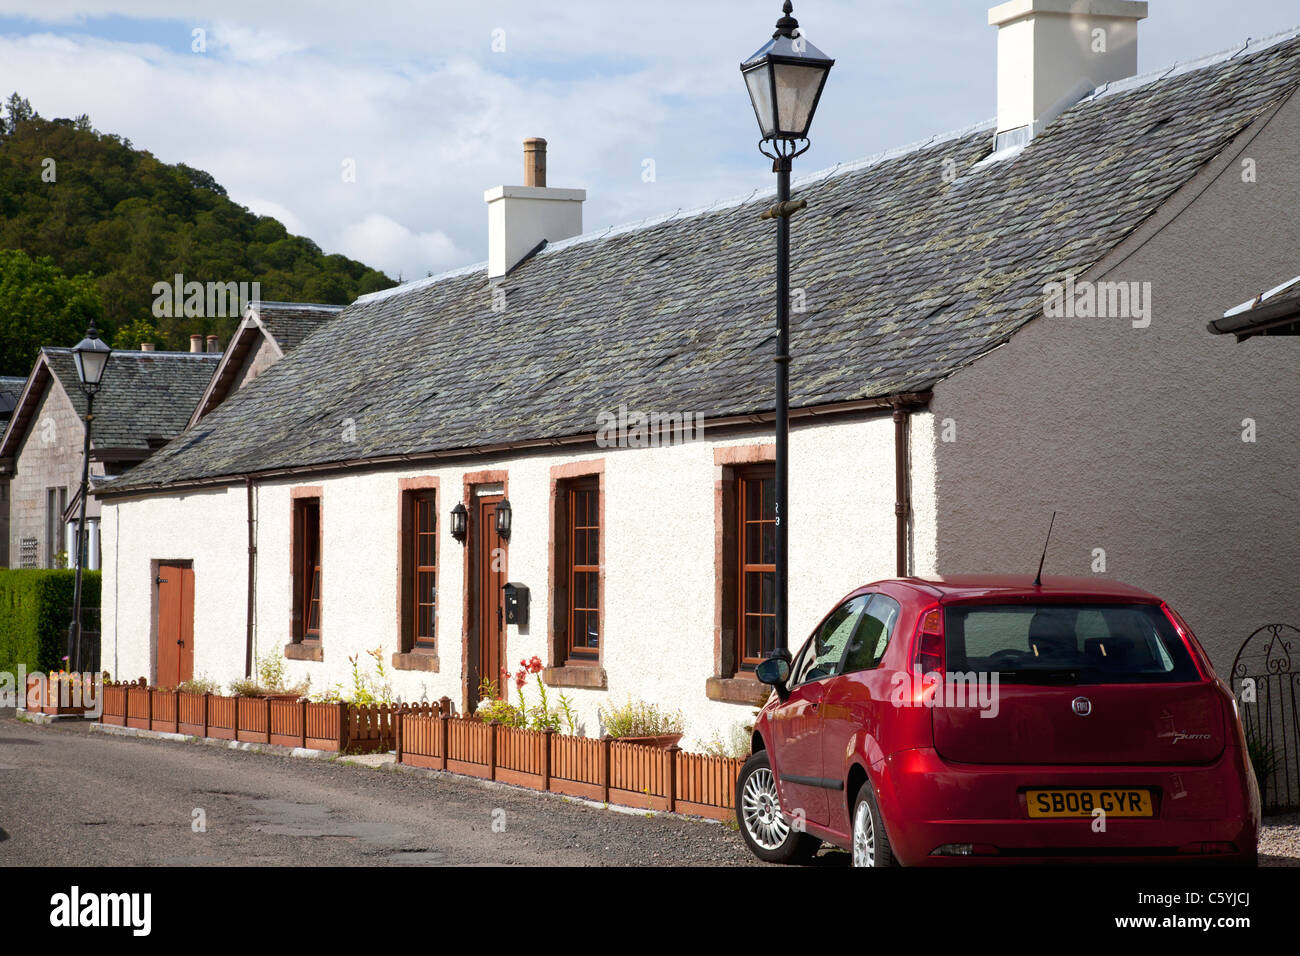 House and car in the village, Luss, Argyll & Bute - Stock Image